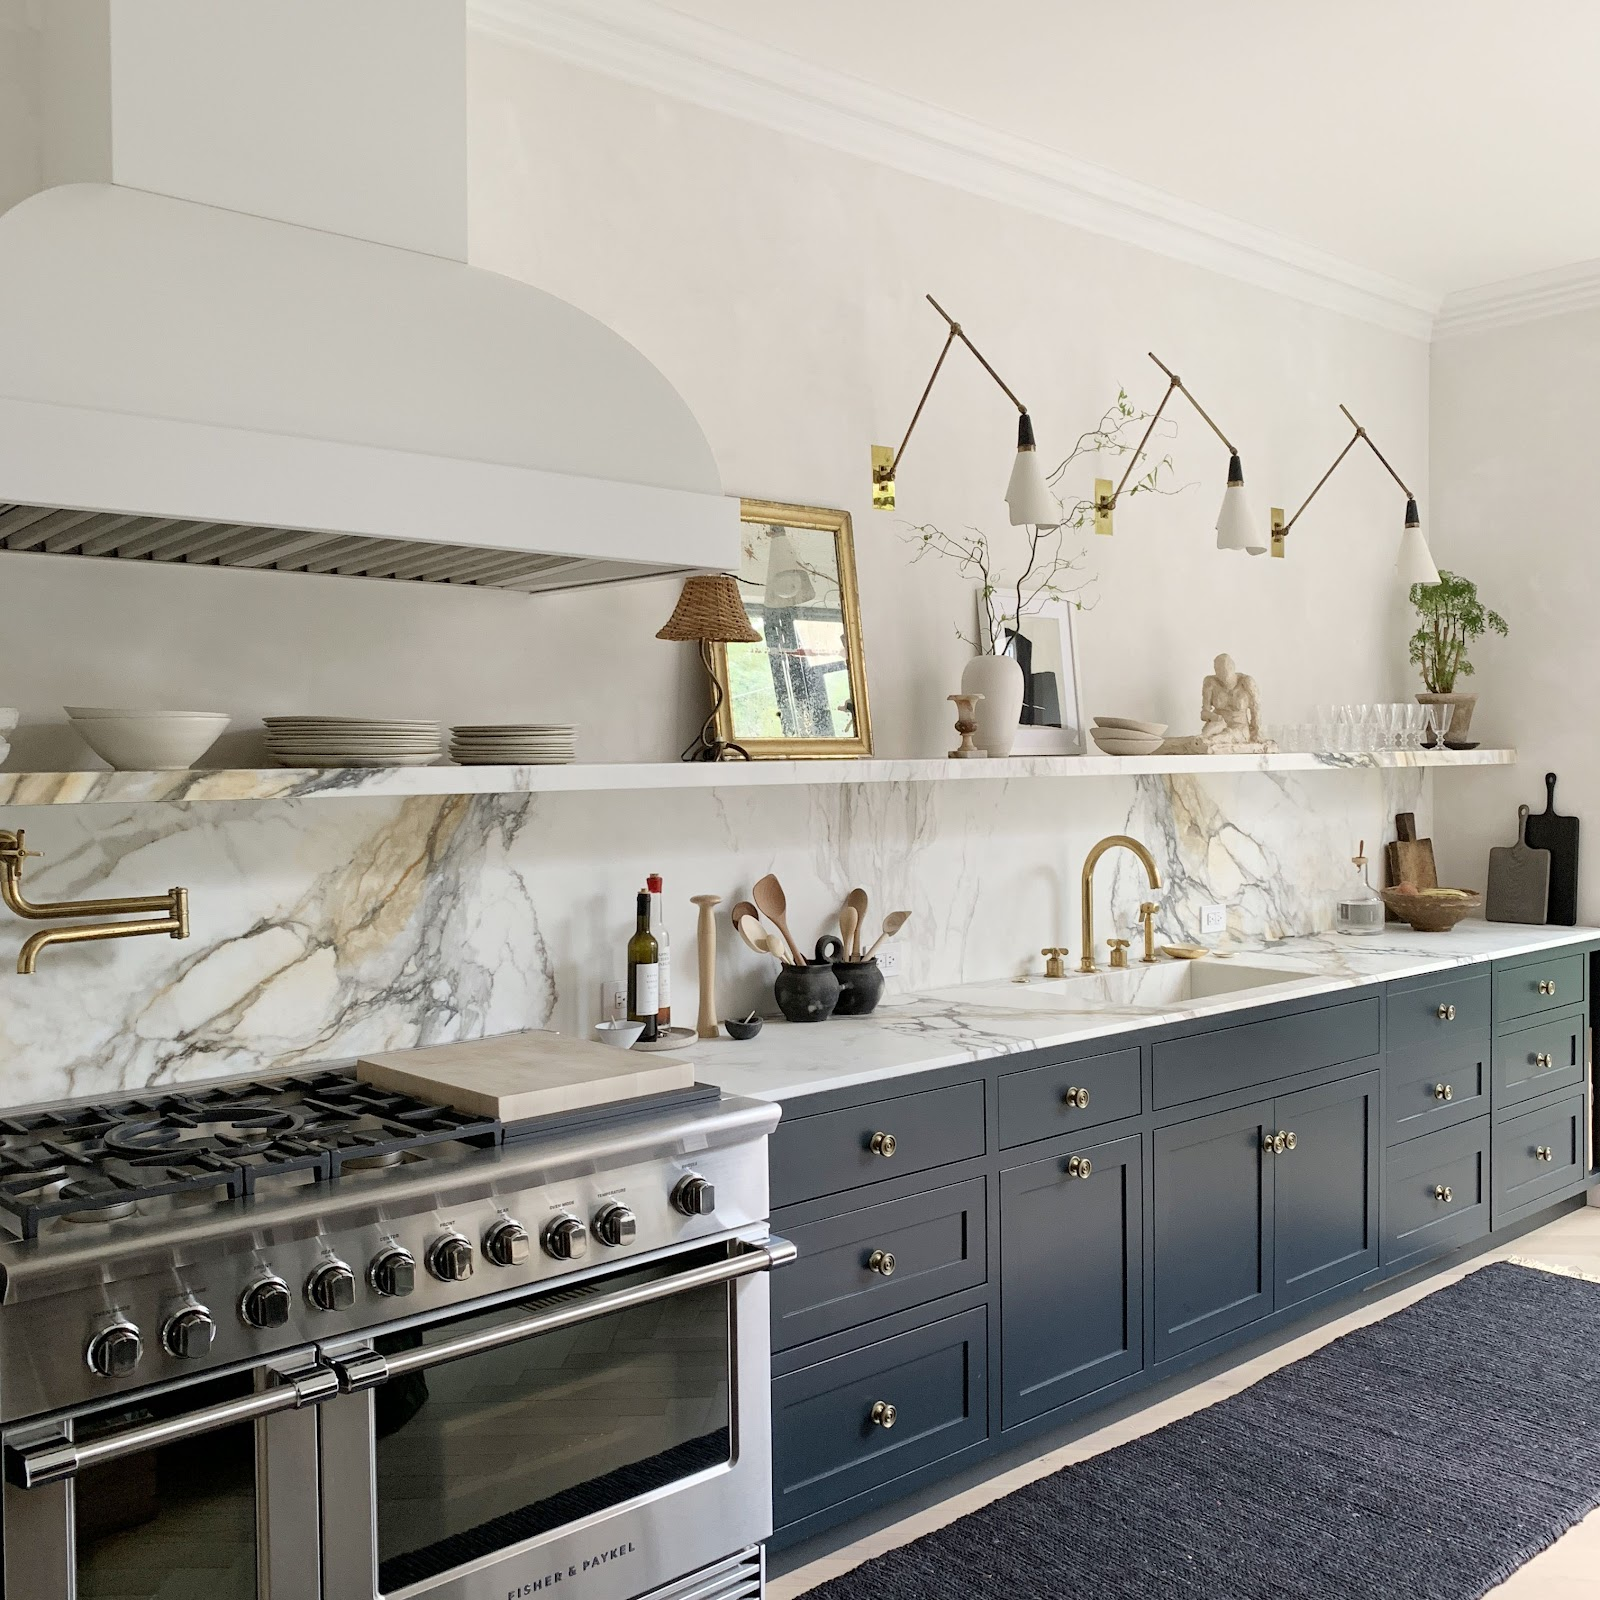 kitchen trends natural gold grey white stone modern lighting classic navy cabinets